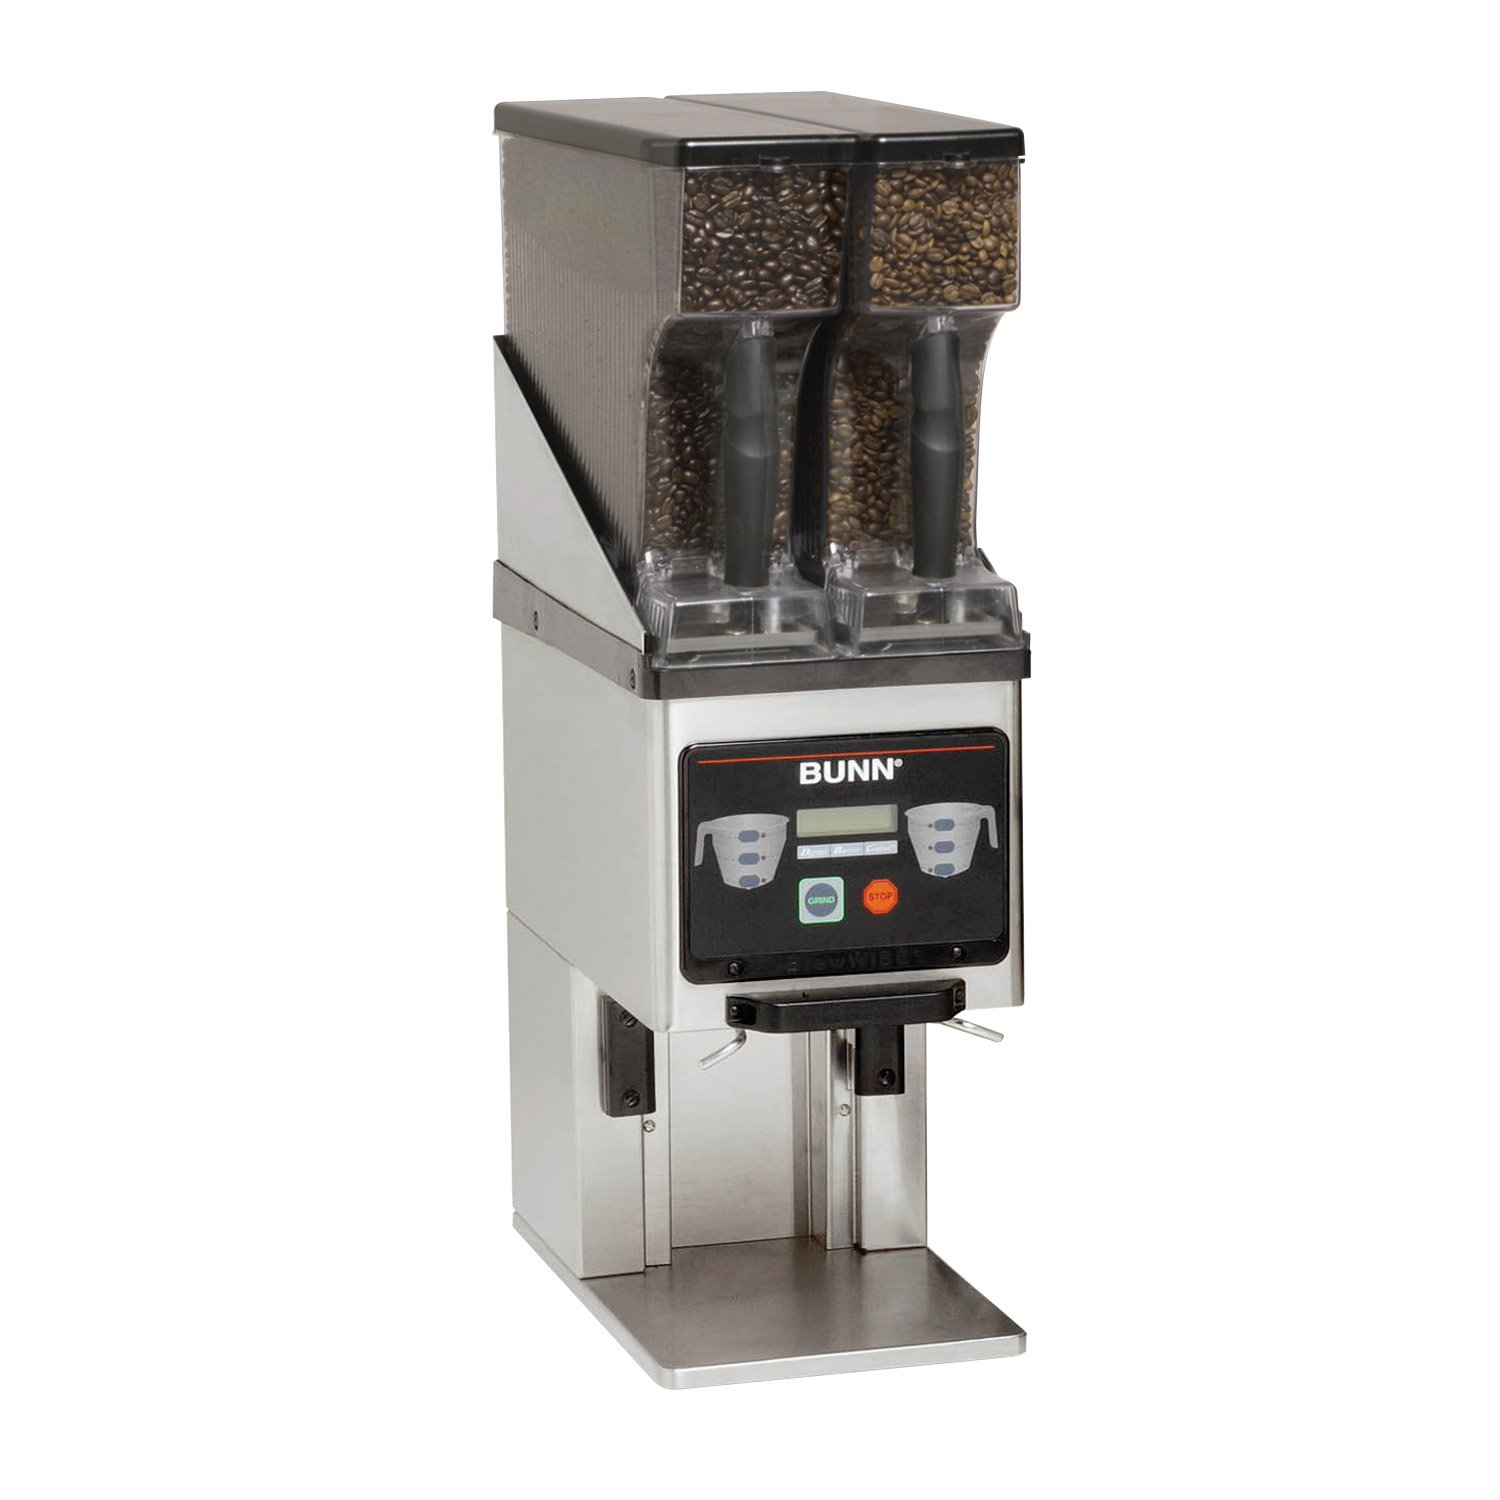 BUNN 35600.0020 Multi-Hopper Coffee Grinder & Storage System, Black/Stainless